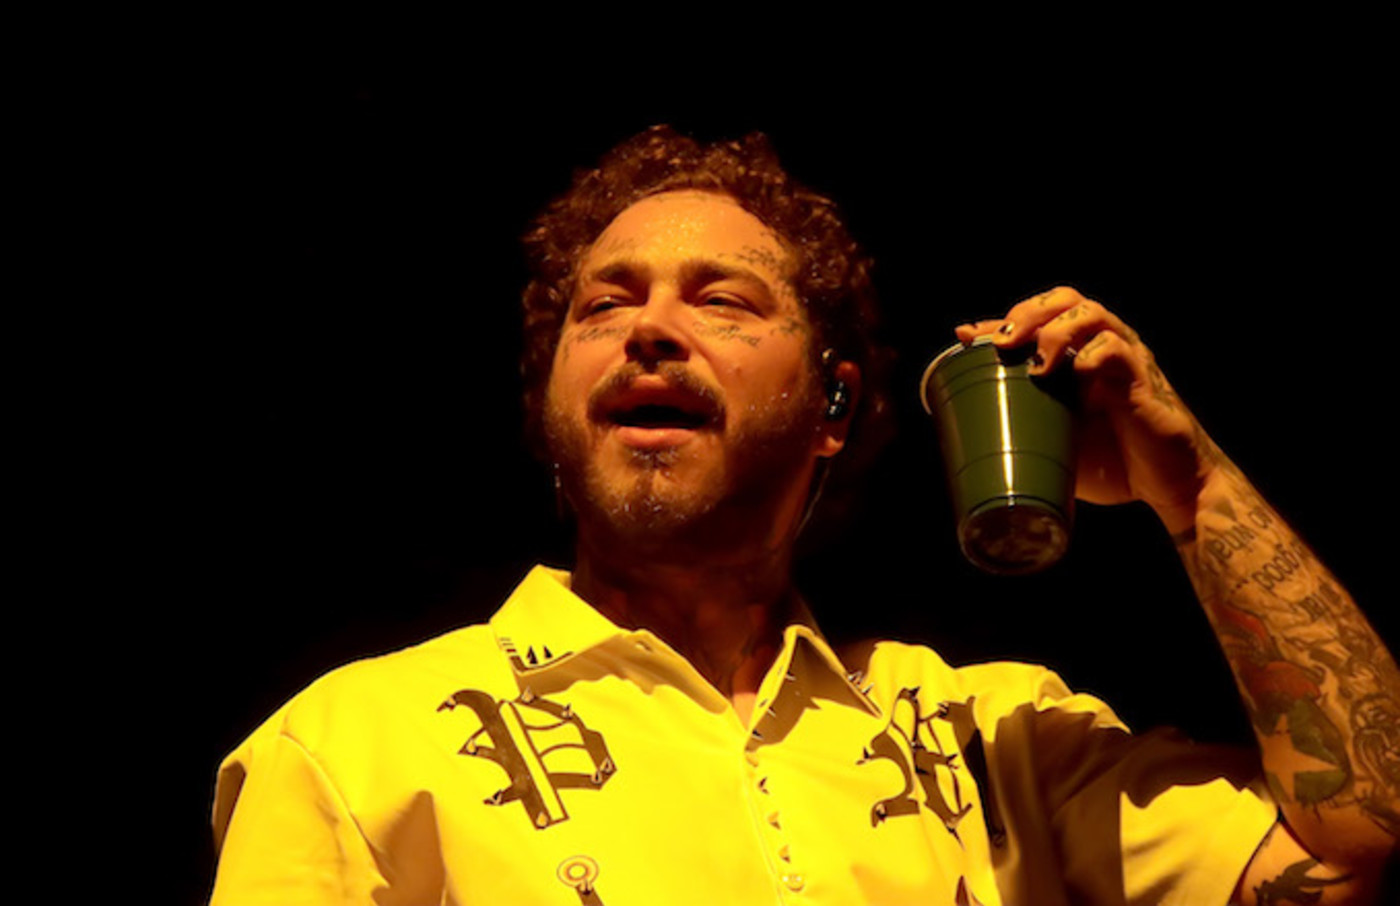 Post Malone performs in concert at Atlantic City Boardwalk Hall.